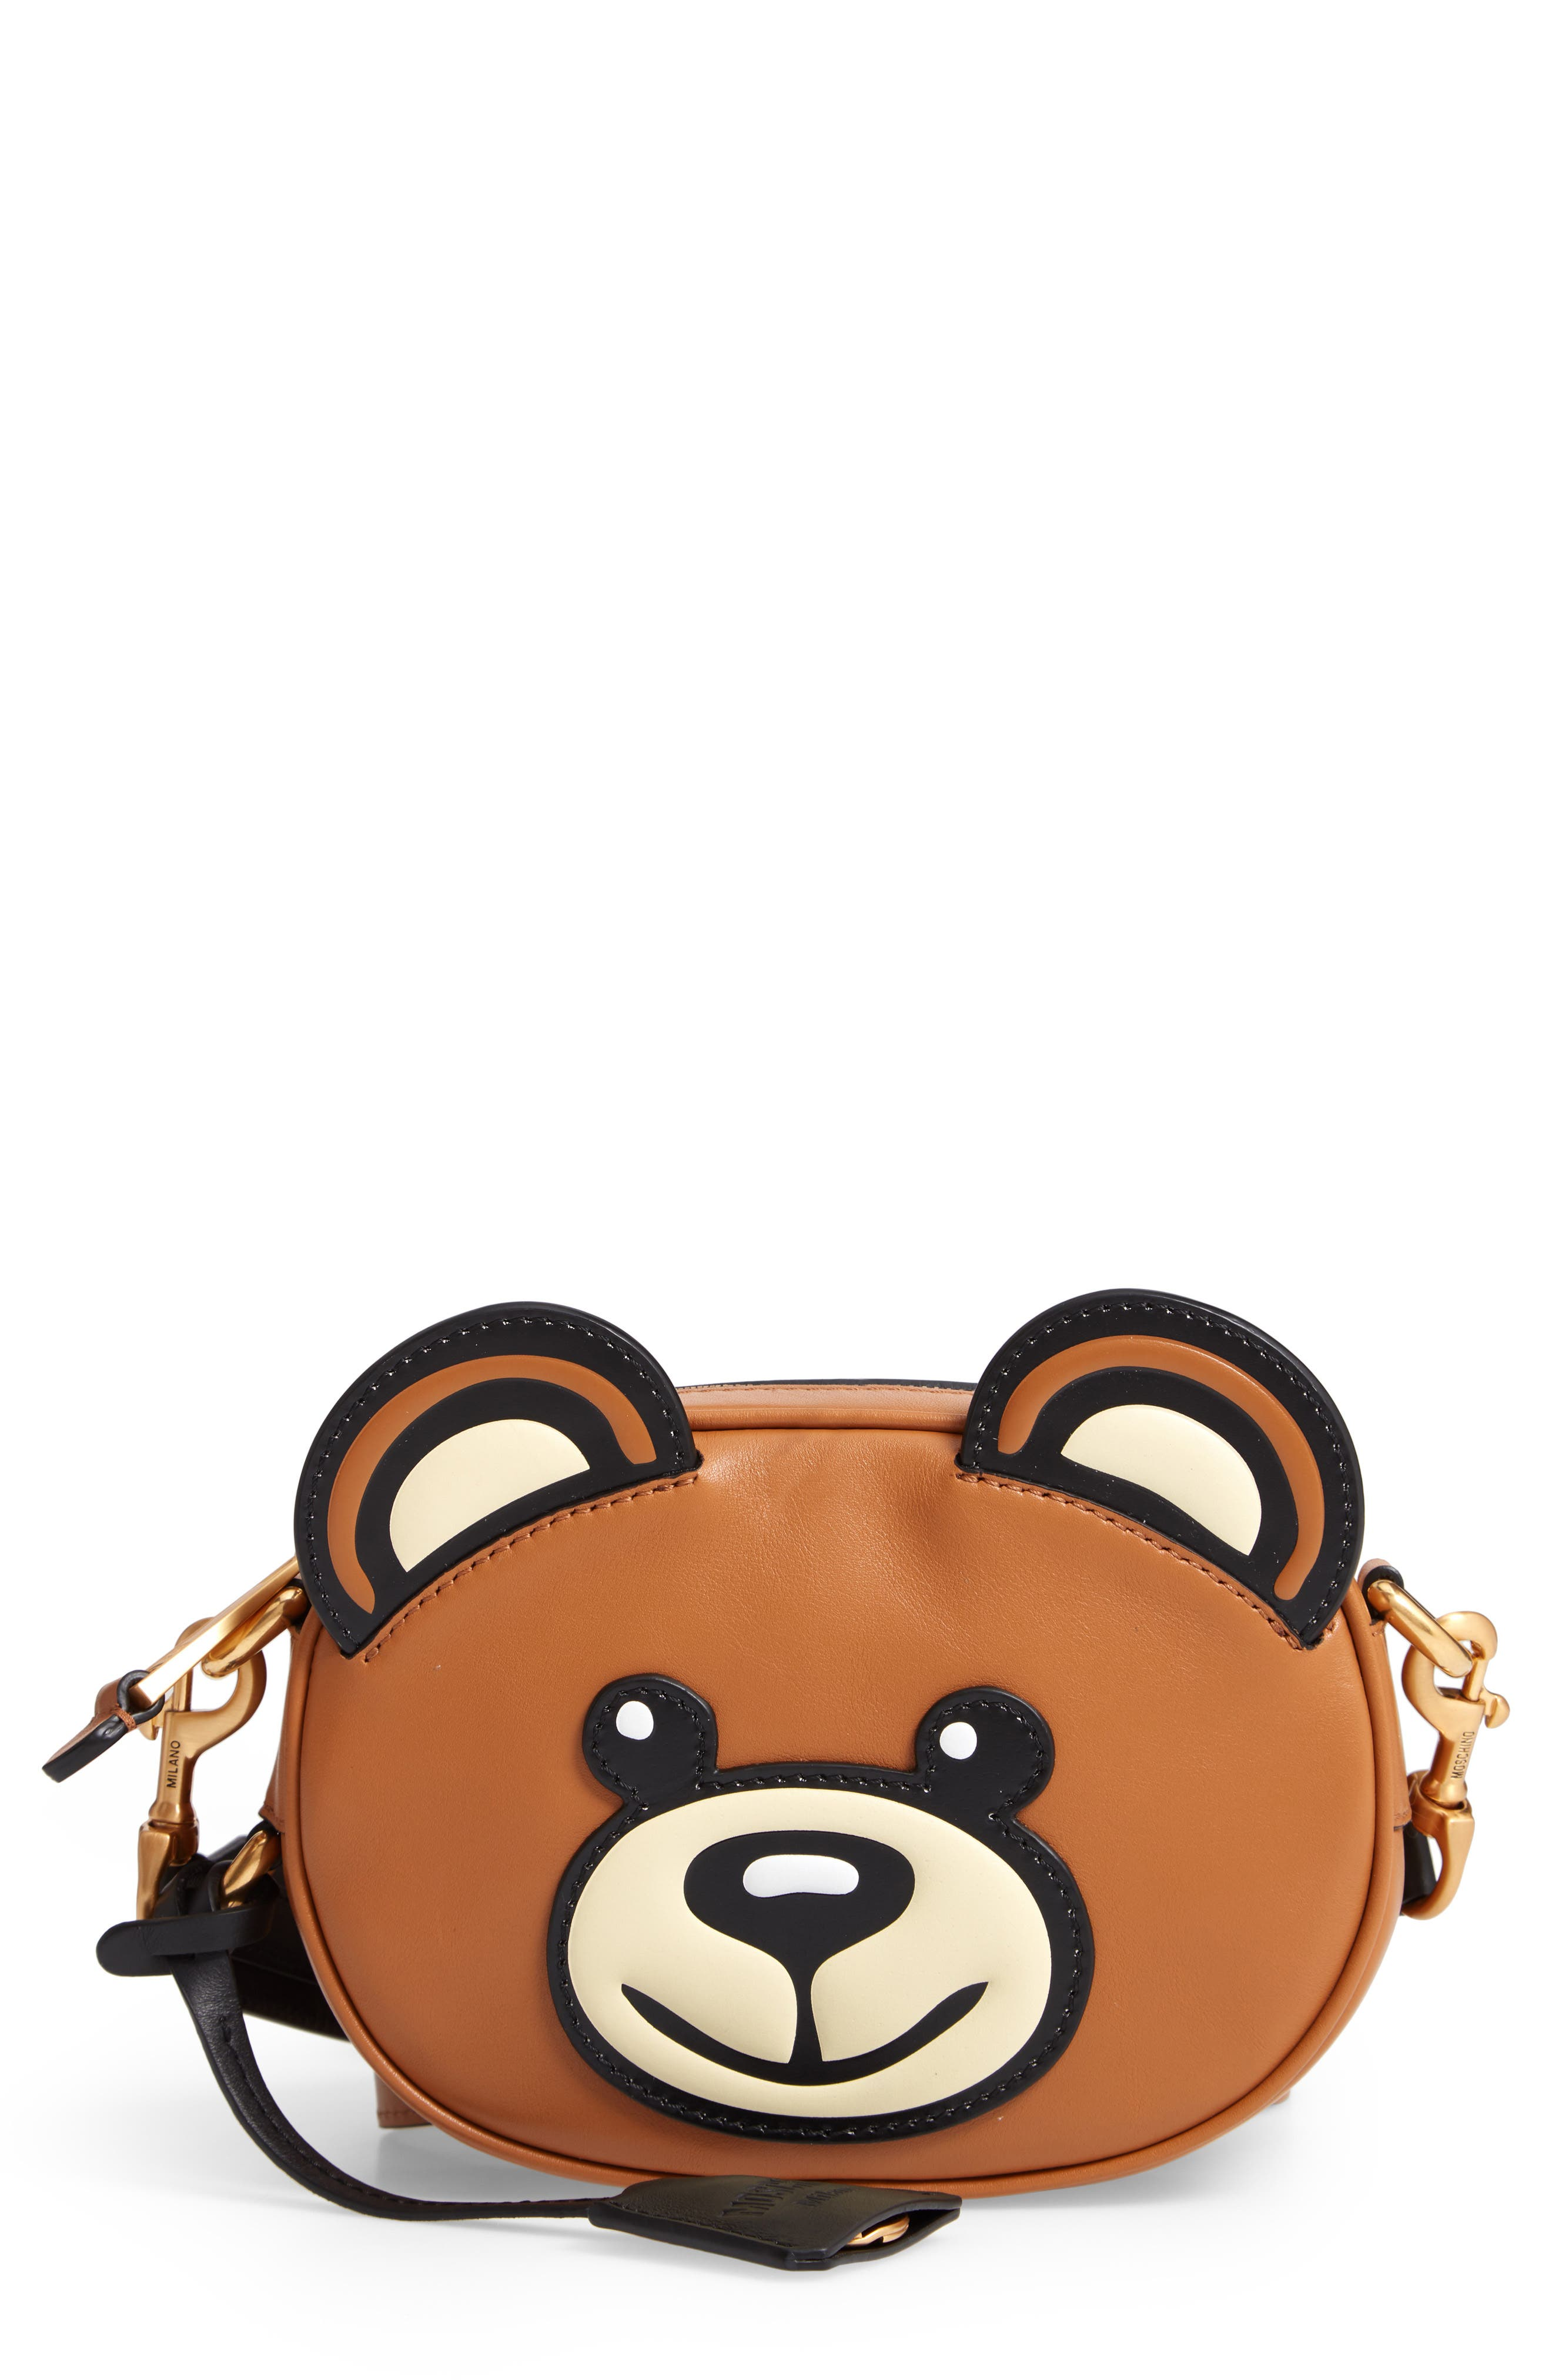 MOSCHINO, Crystal Teddy Leather Crossbody Bag, Main thumbnail 1, color, BROWN